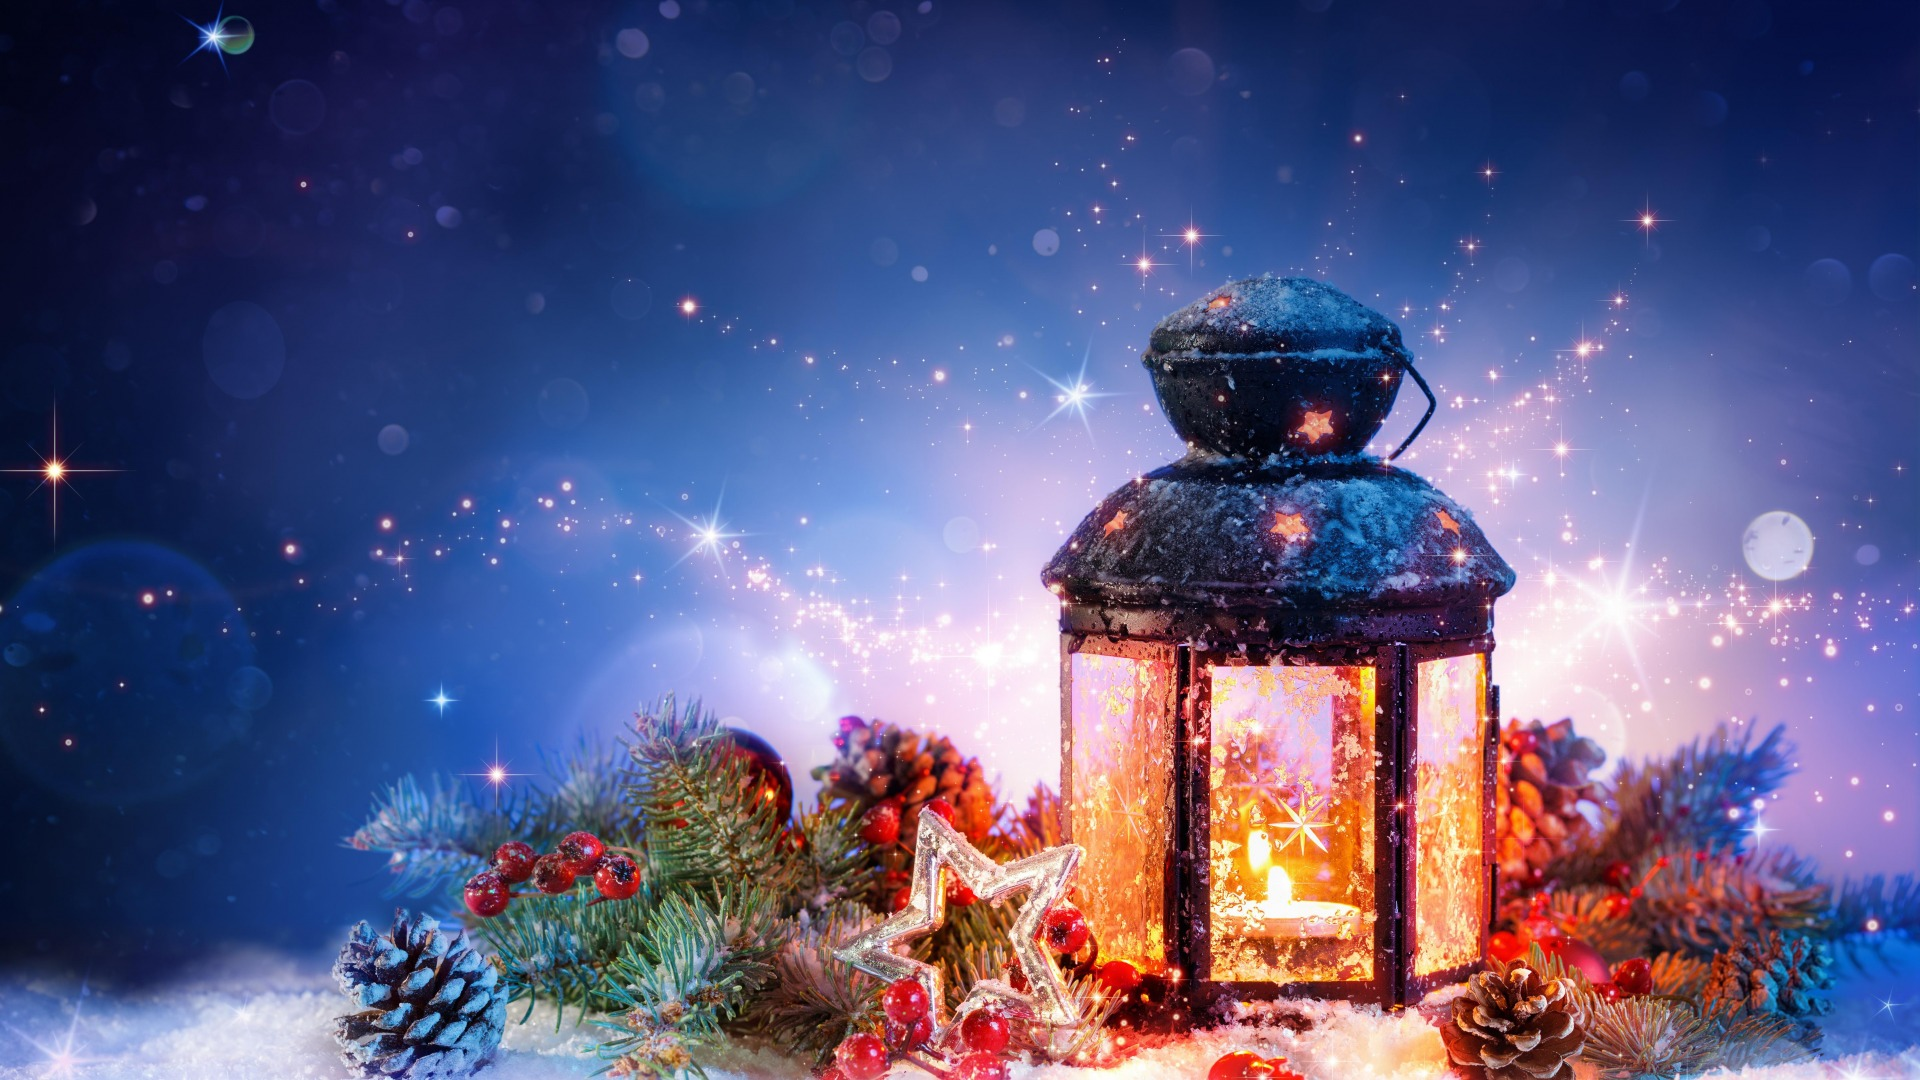 Download-snow-decoration-Christmas-lantern-New-year-tinsel-bumps-section-wallpaper-wp3804824